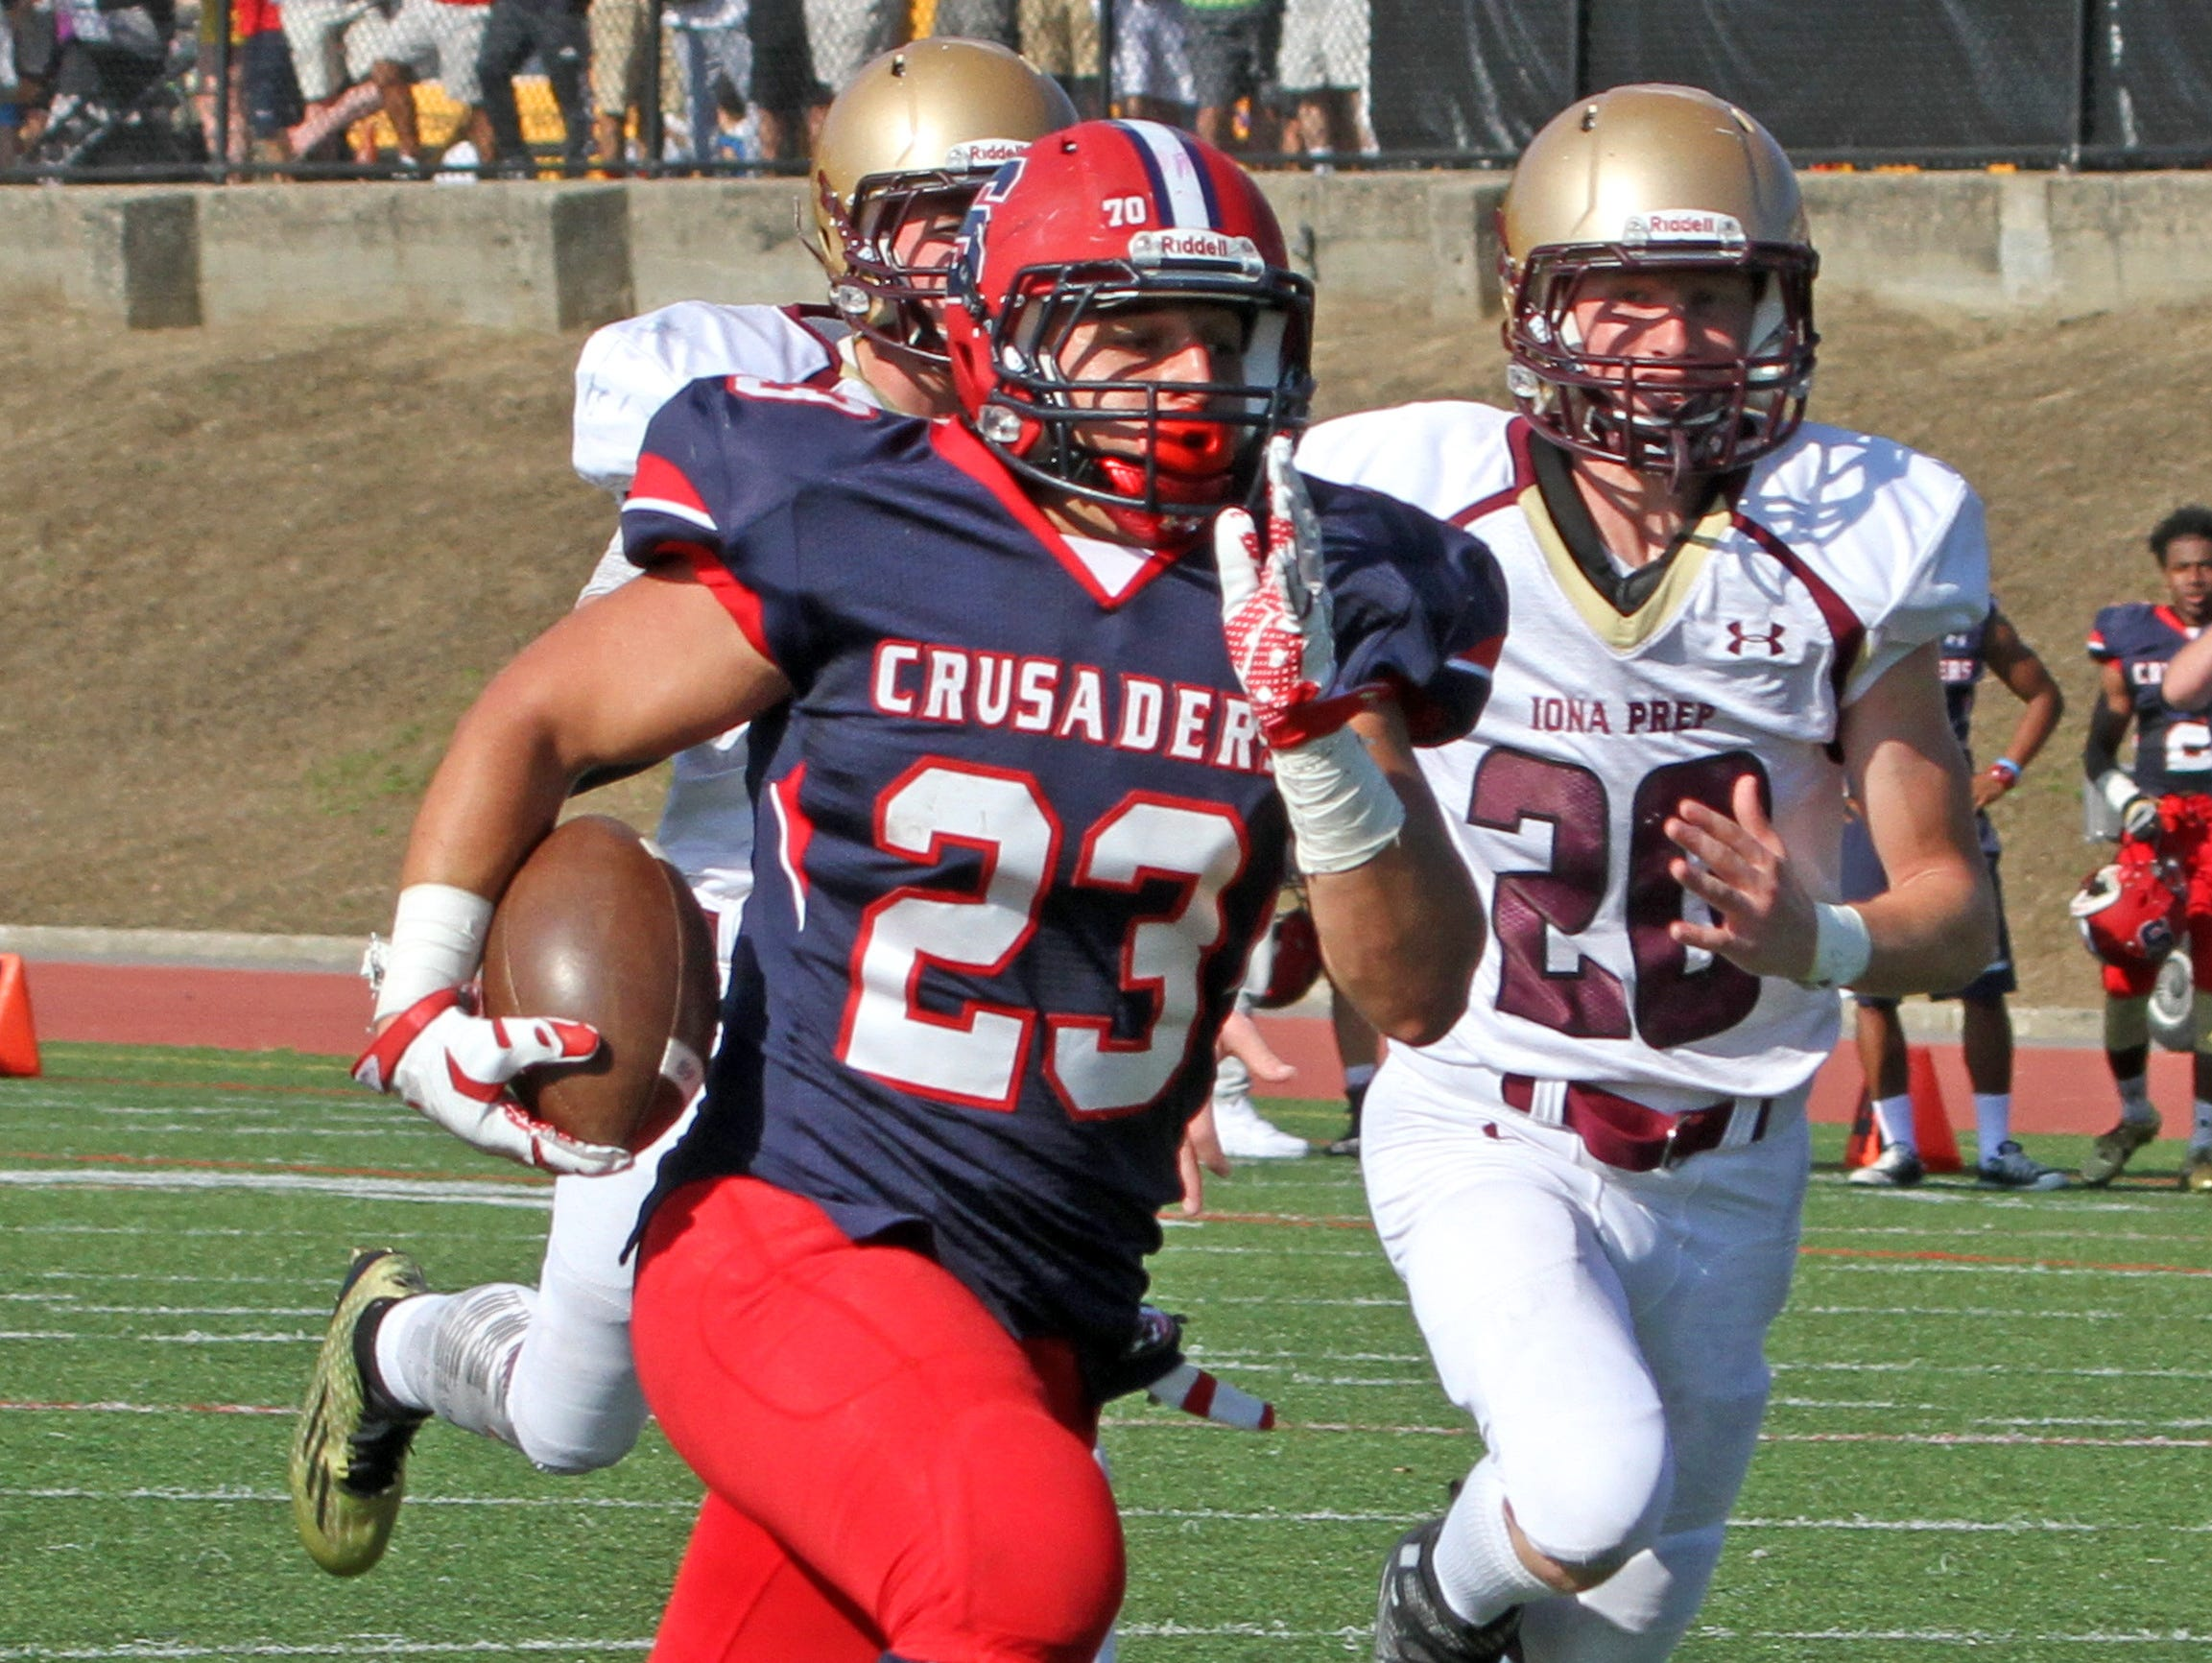 Stepinac's Antonio Giannico rushes for a 28-yard touchdown during a varsity football game at Stepinac High School Sept. 19, 2015. Stepinac crushed Iona Prep 48-6.